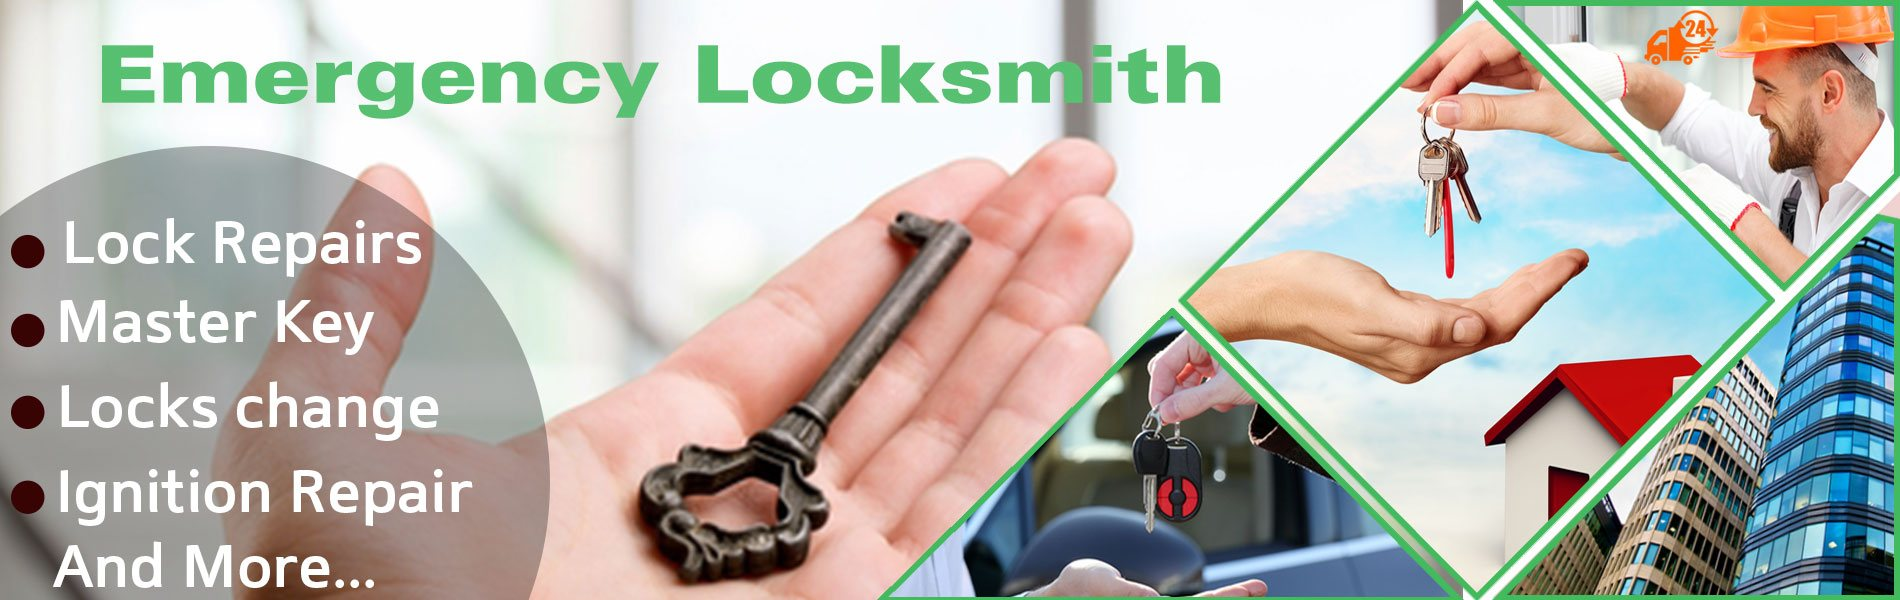 Lock Safe Services Newhall, CA 661-745-3266